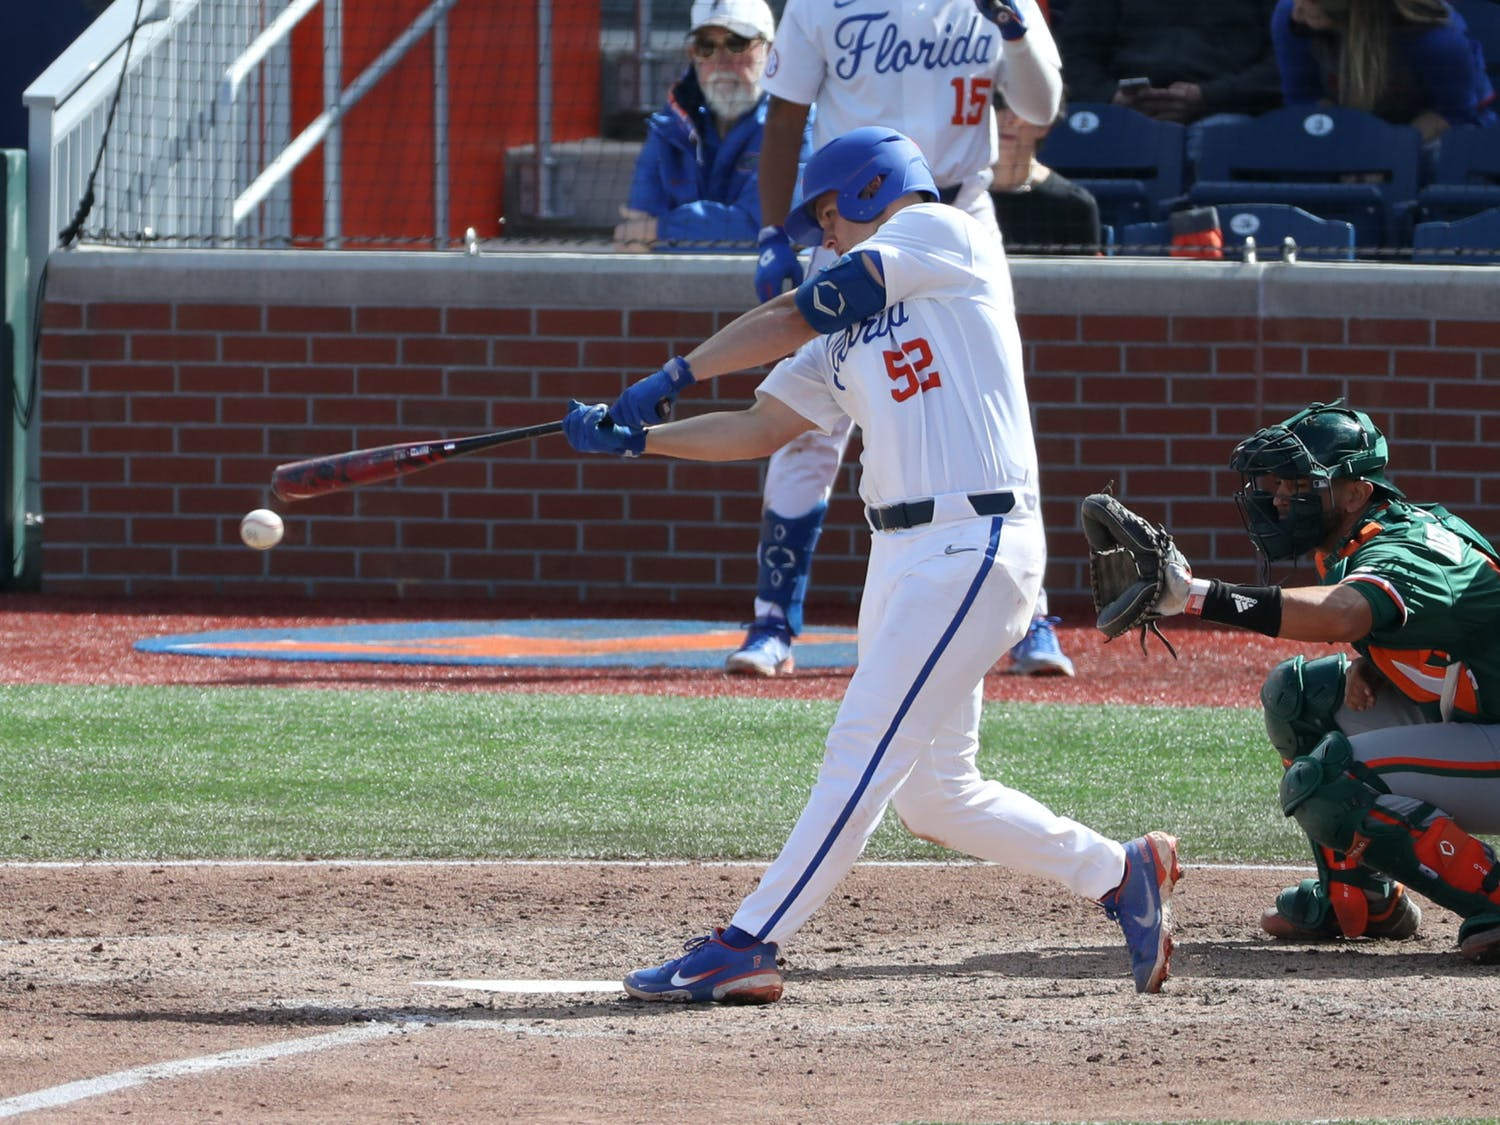 The gift of a season and the ability to play again isn't lost on the Florida dugout. Photo from the UF-UM game Feb. 21. Courtesy of the SEC Media.